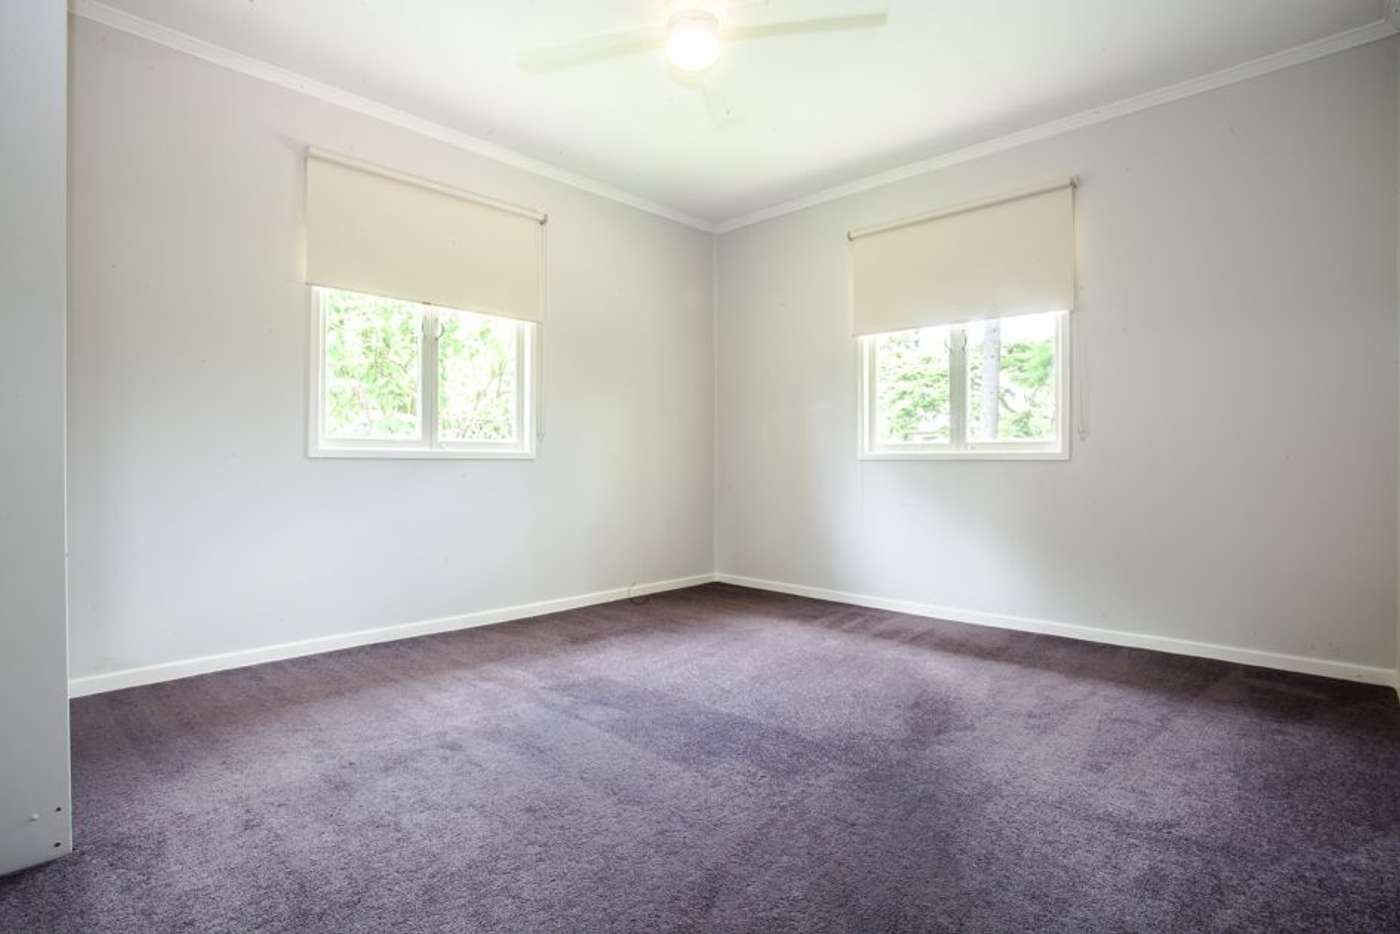 Sixth view of Homely house listing, 44 Queens Road, Slacks Creek QLD 4127